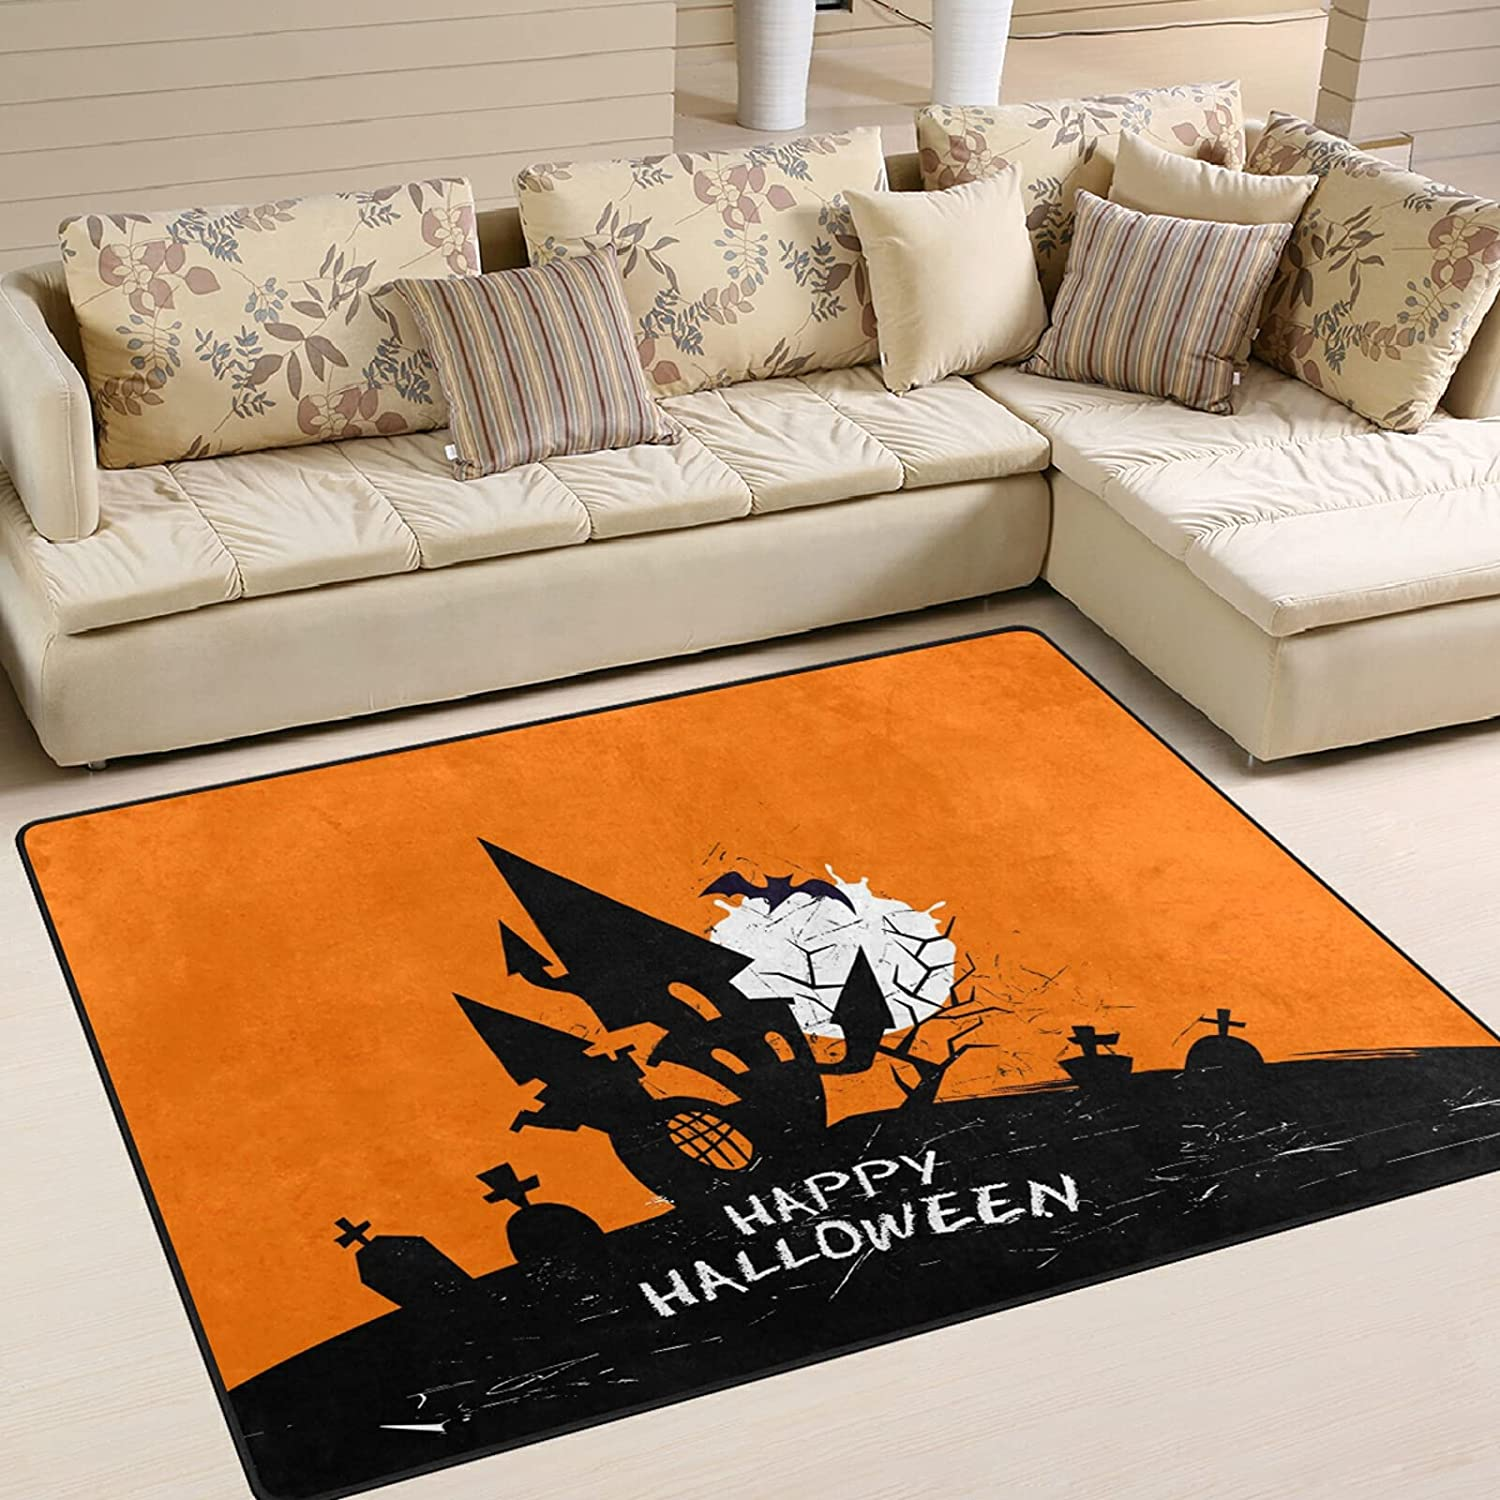 Modern Area Rugs 5x7 depot Washable - Soft Grunge Halloween Excellence Terrific A